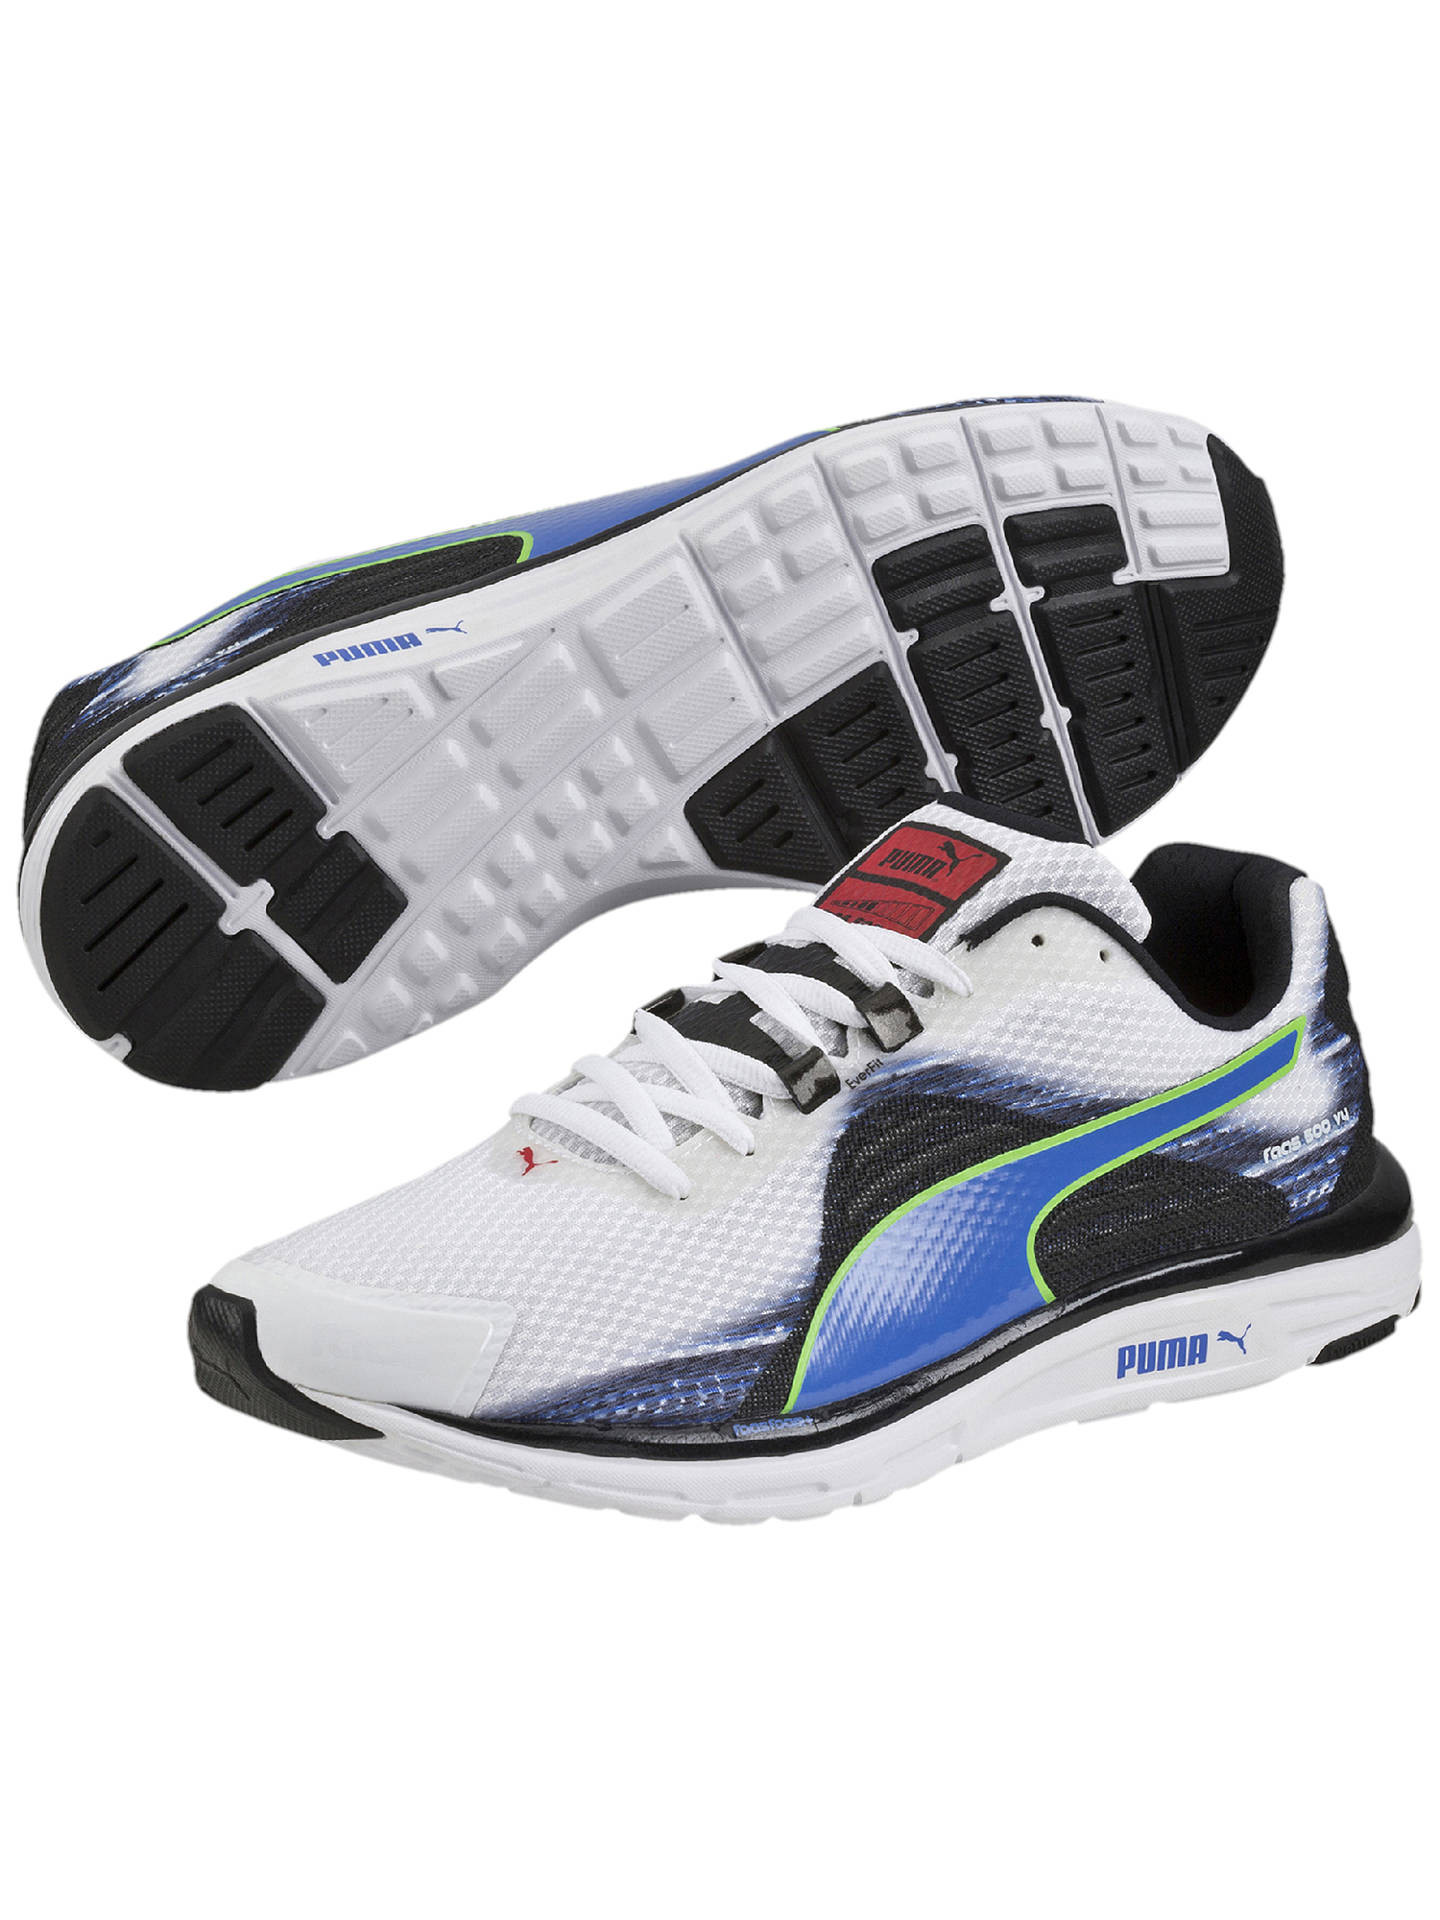 Puma FAAS 500 v4 Men's Running Shoes, WhiteStrong Blue at